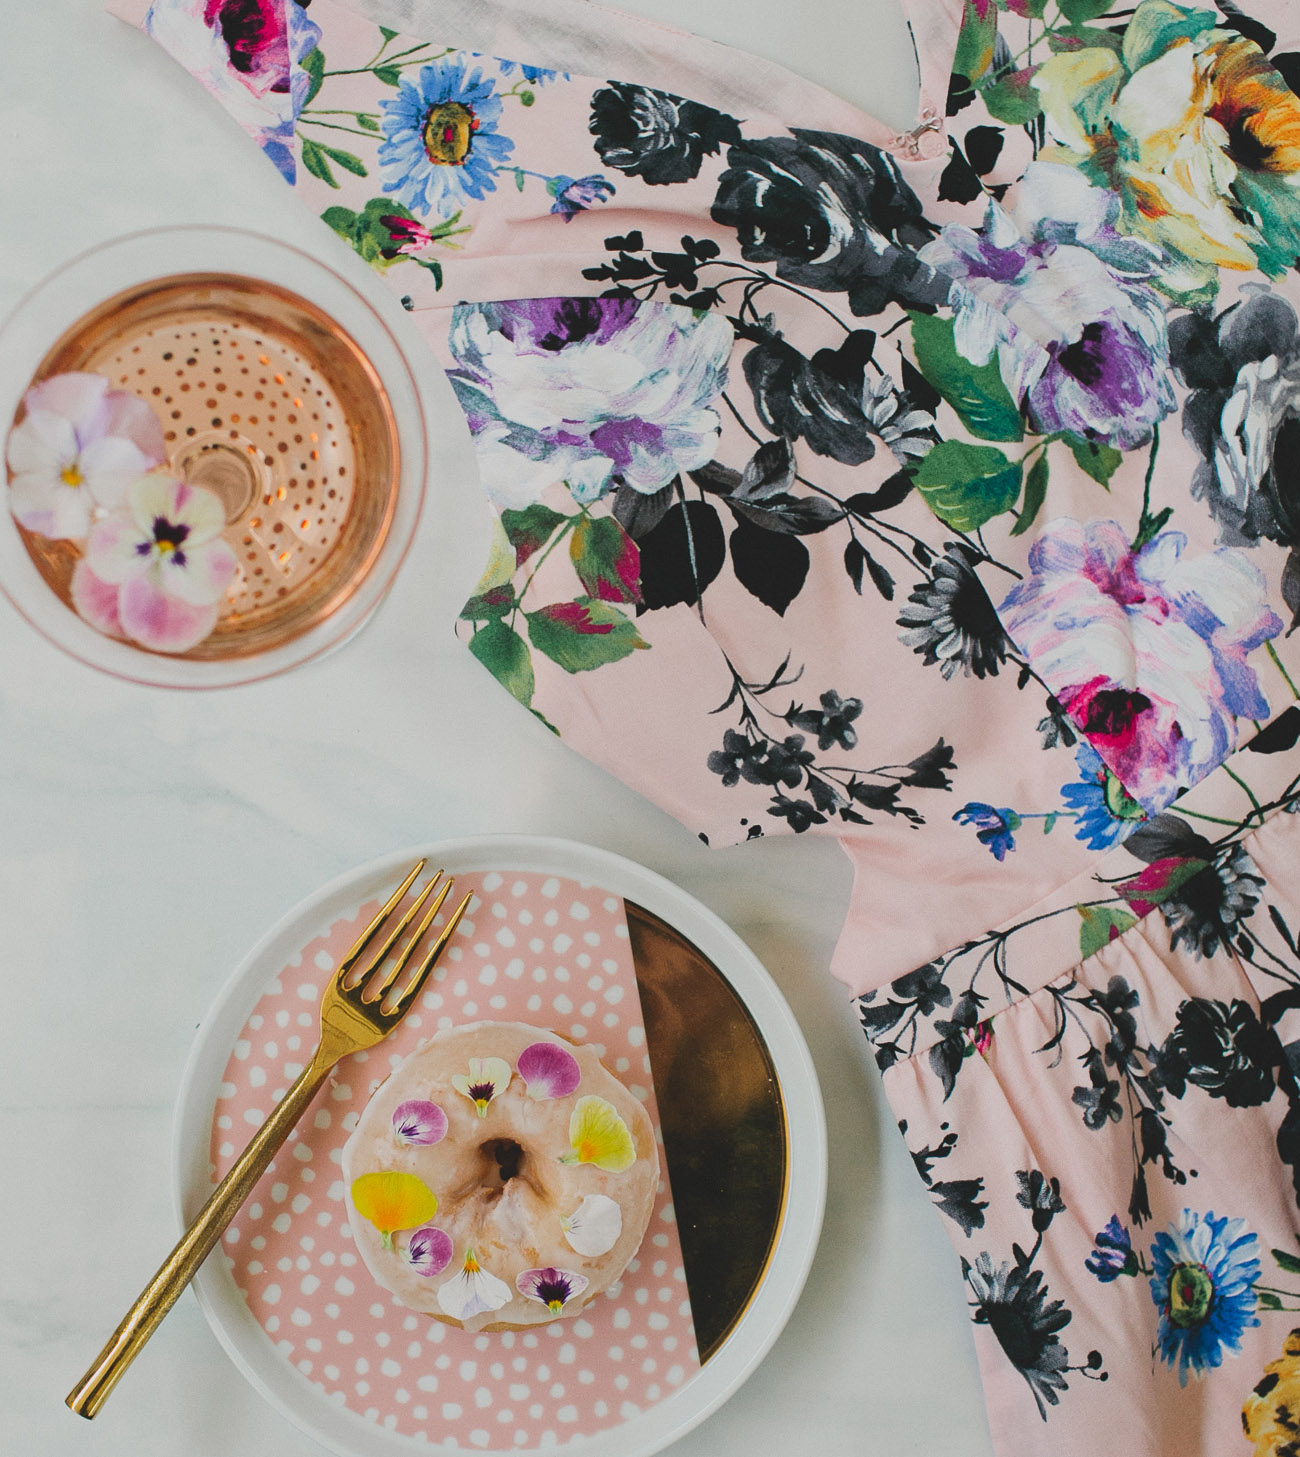 donuts with flowers and floral dress